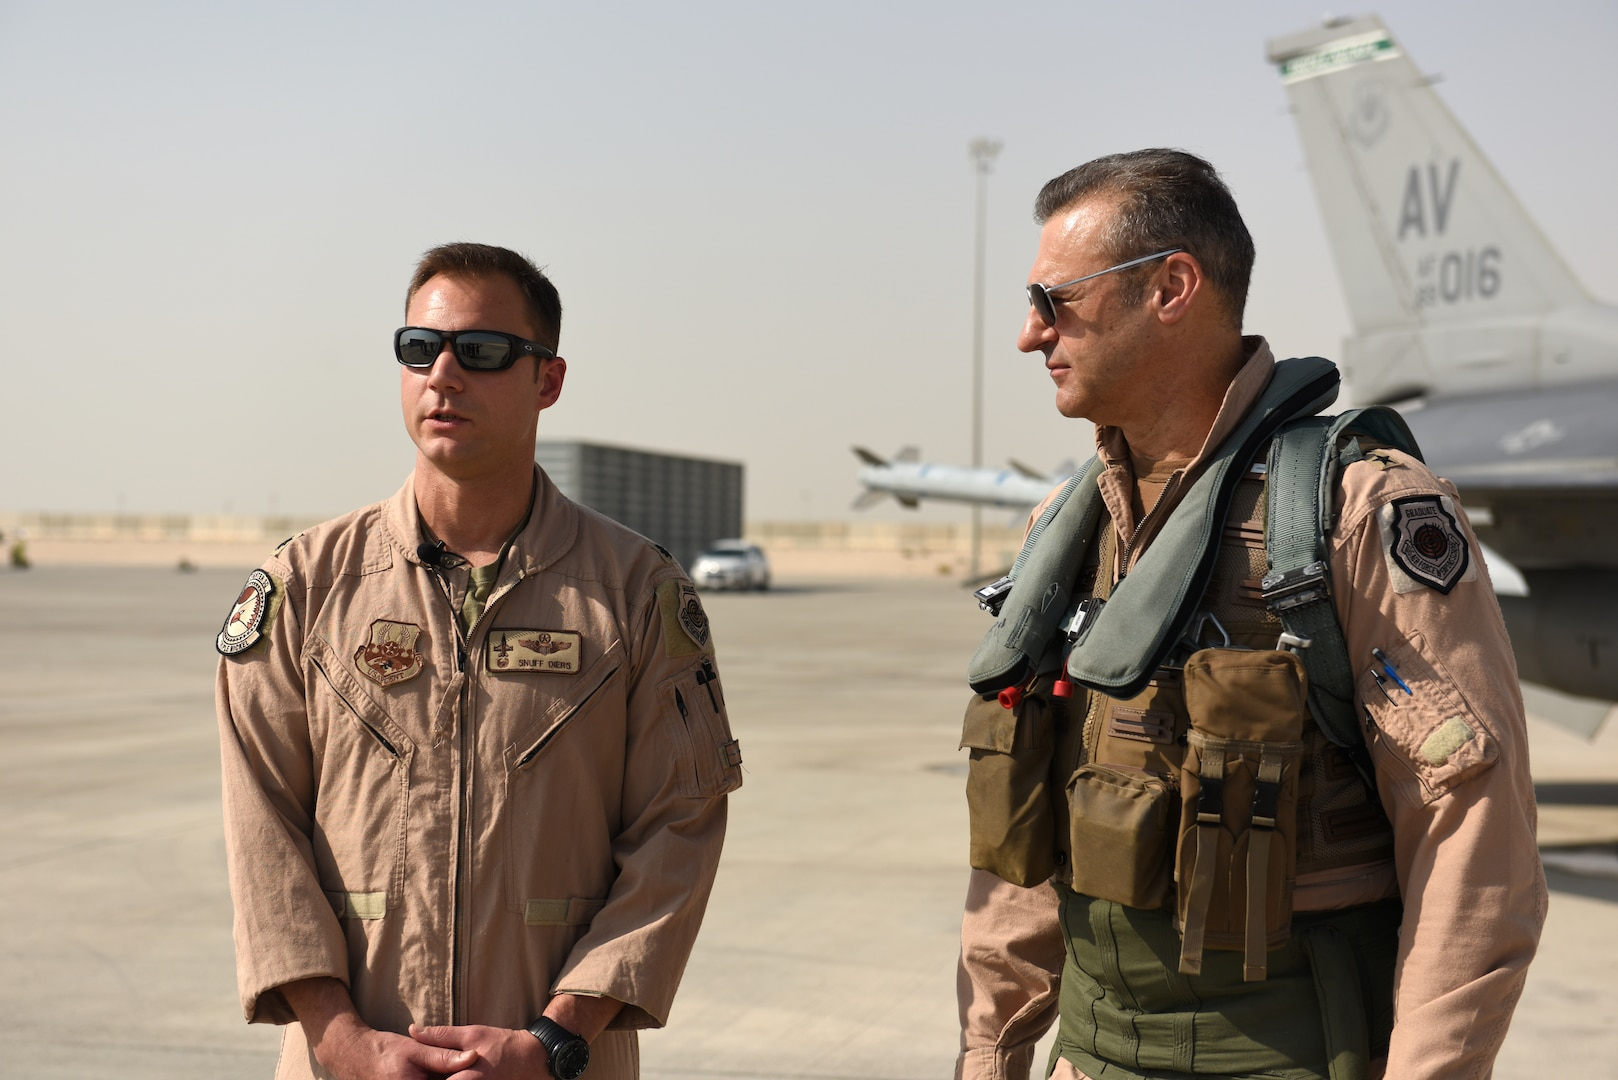 U.S. Air Force Lt. Gen. Joseph Guastella, commander of U.S. Air Forces Central Command, and USAF Lt. Col. Beau Diers, commander of the 555th Fighter Squadron, talk about the squadron's role and history in AFCENT, Nov. 4, 2019.